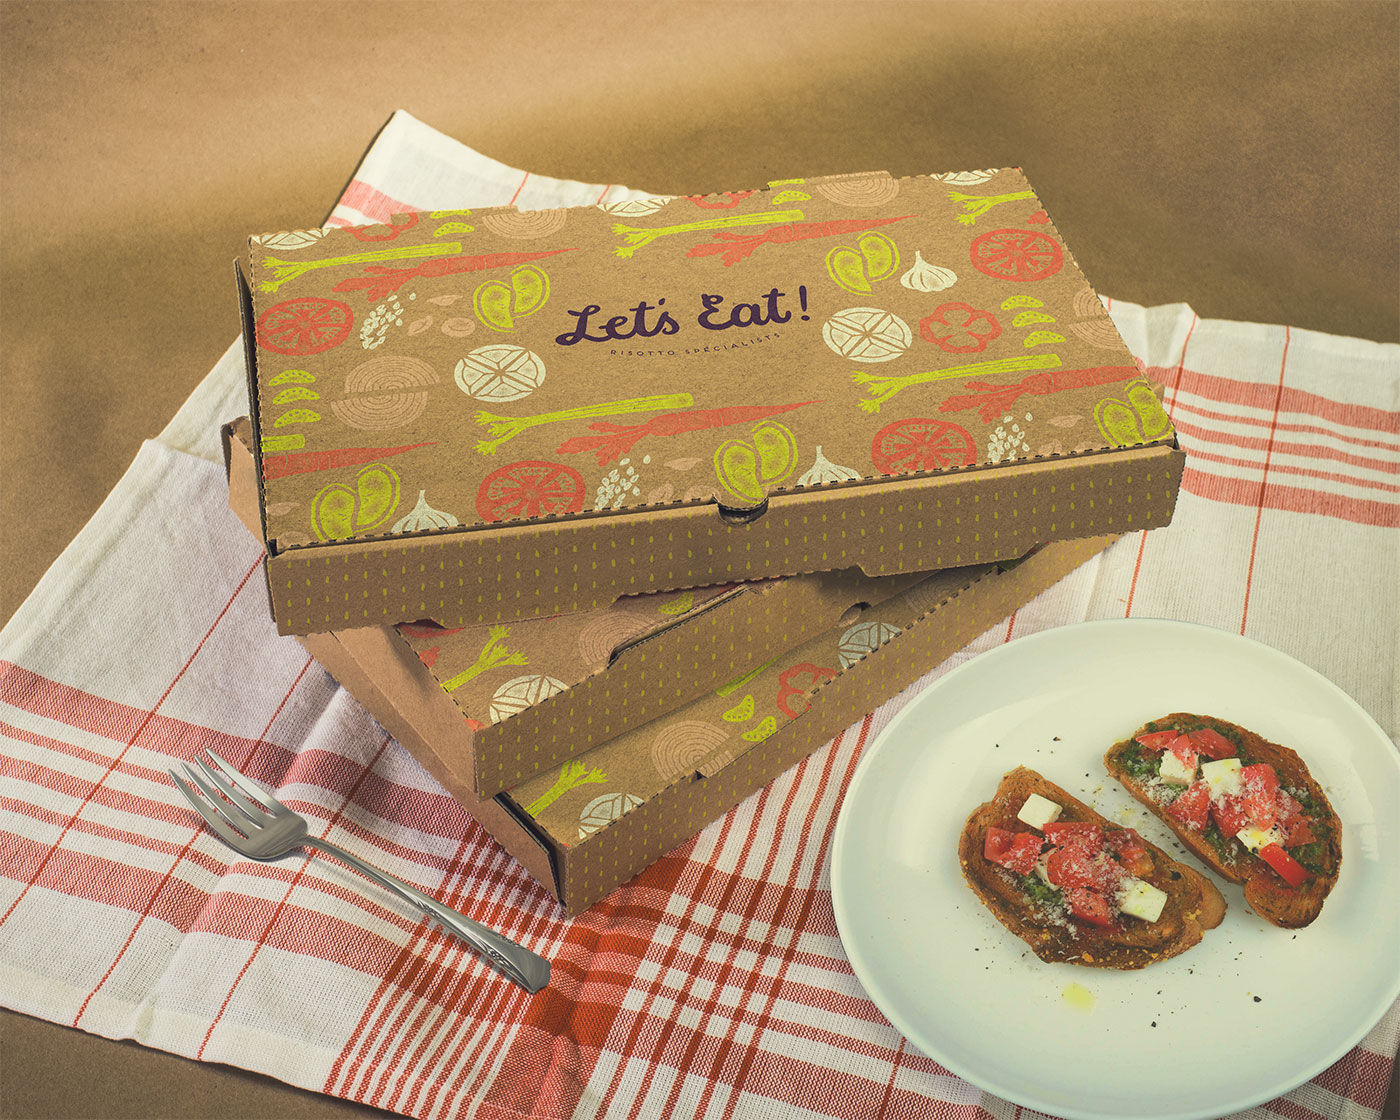 Outfit Branding & Design Let's Eat Boxes